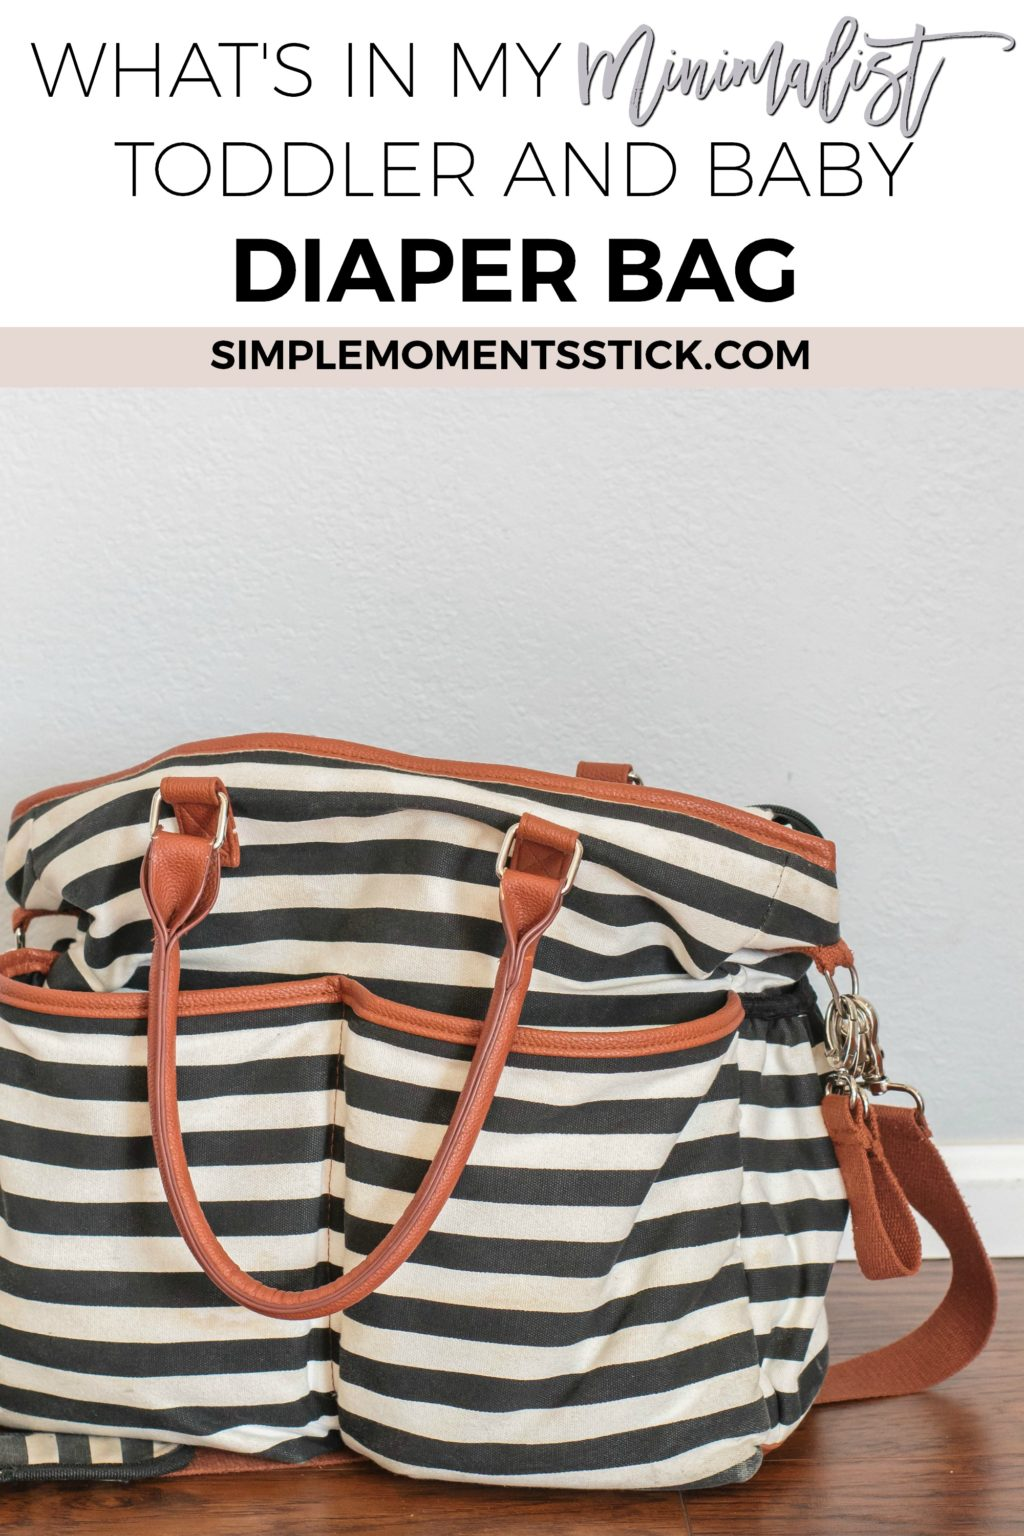 Minimalist diaper bay for toddler AND baby